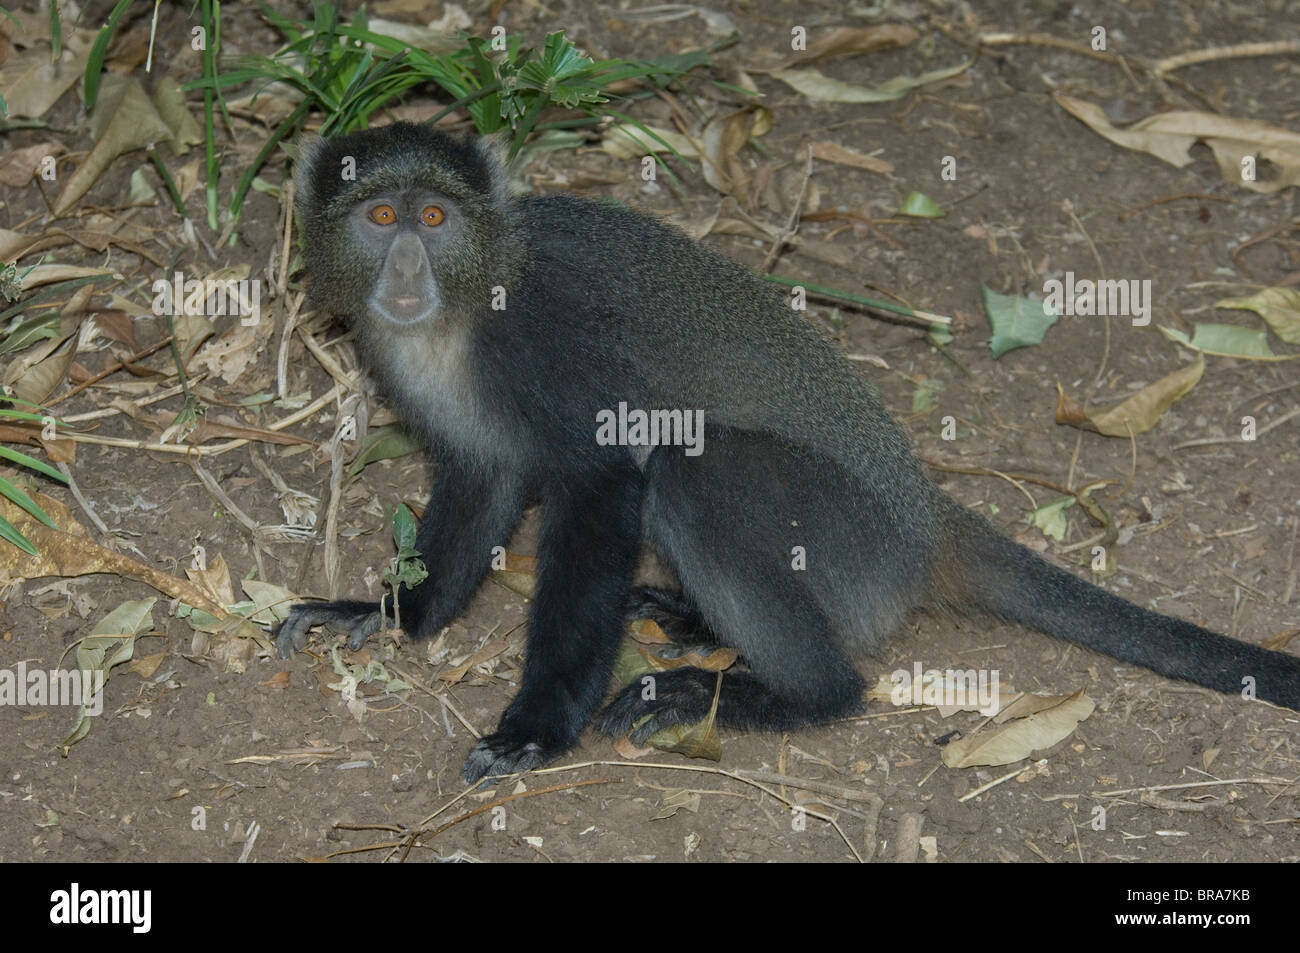 BLUE MONKEY LAKE MANYARA NATIONAL PARK TANZANIA AFRICA - Stock Image